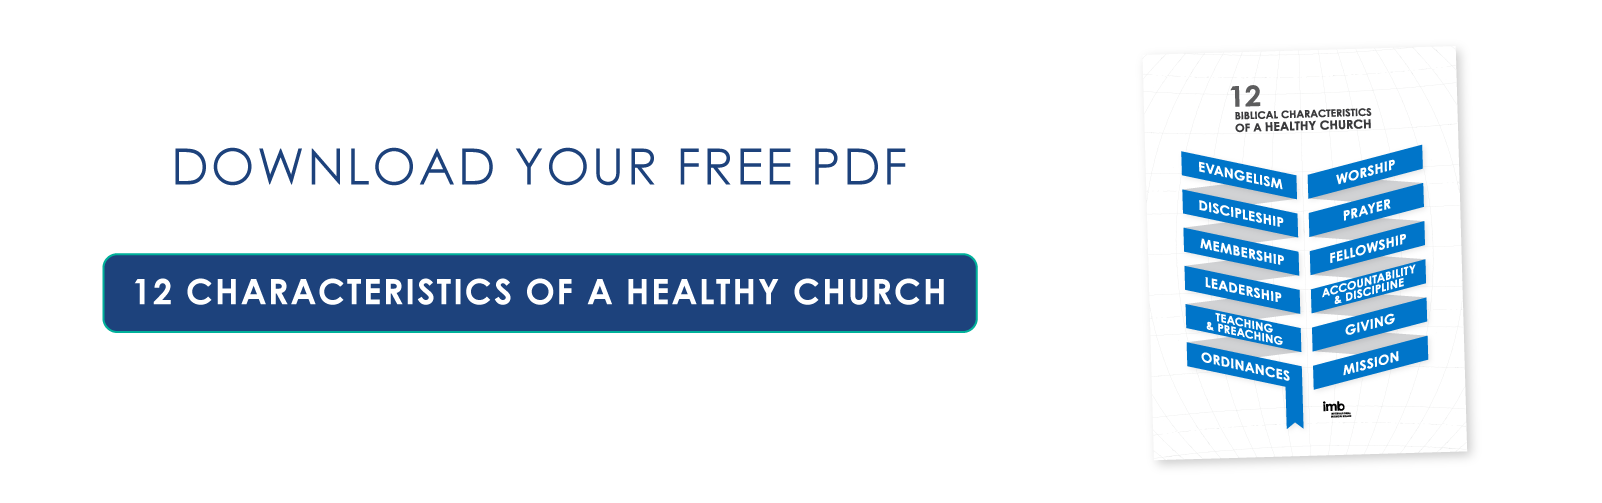 12 Characteristics of a Healthy Church